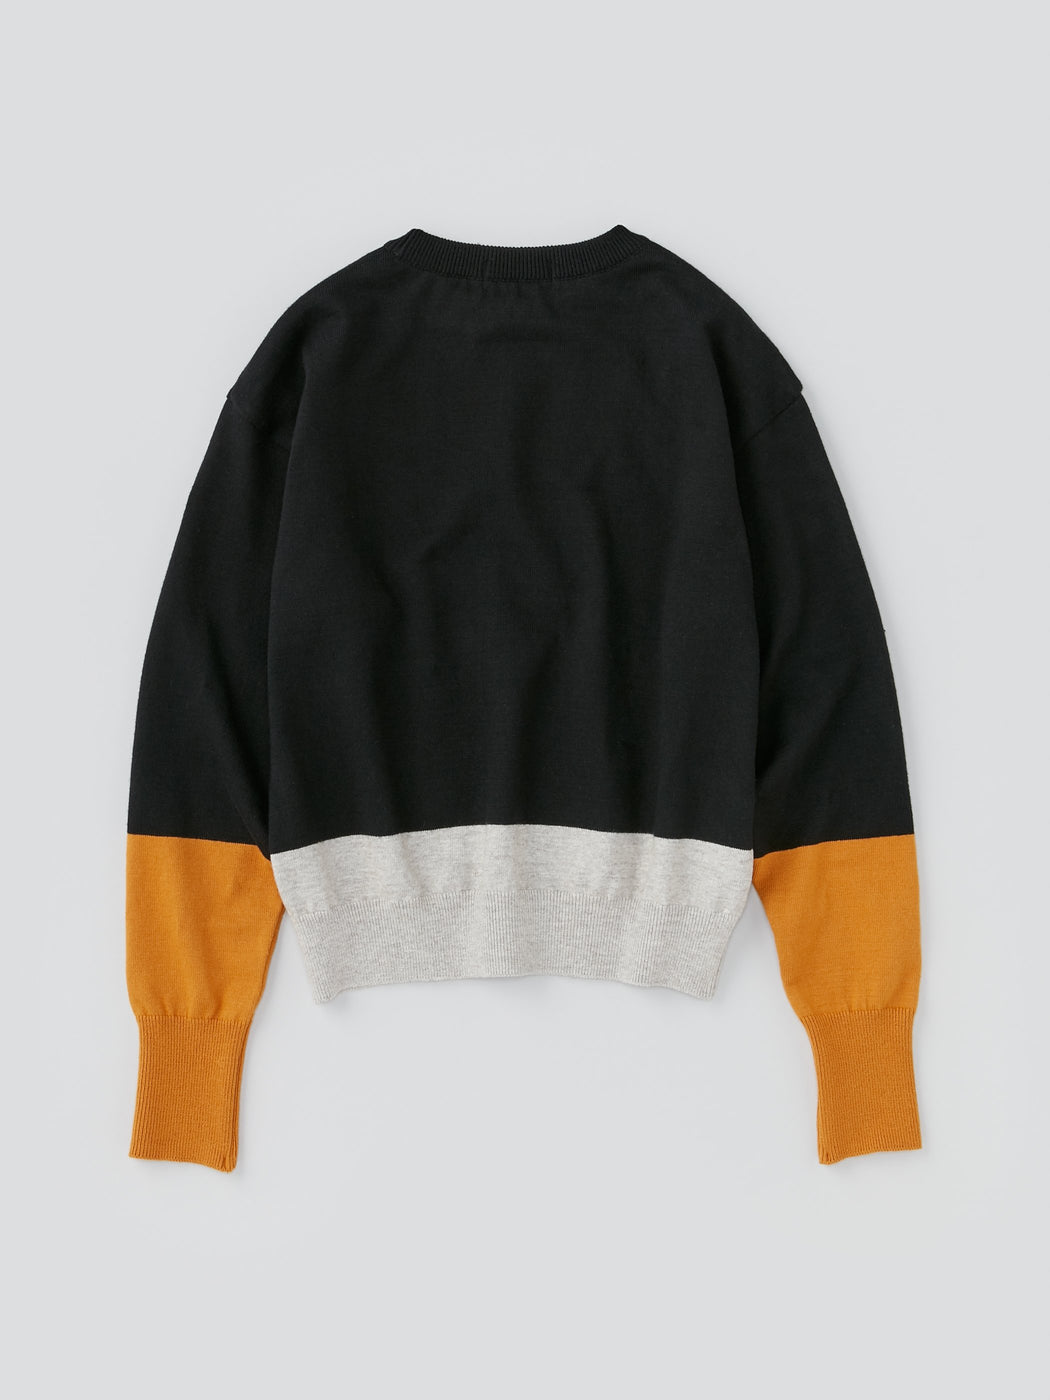 ALOYE G.F.G.S. Women's Cotton Knitted Wide Sweater Black Color Block